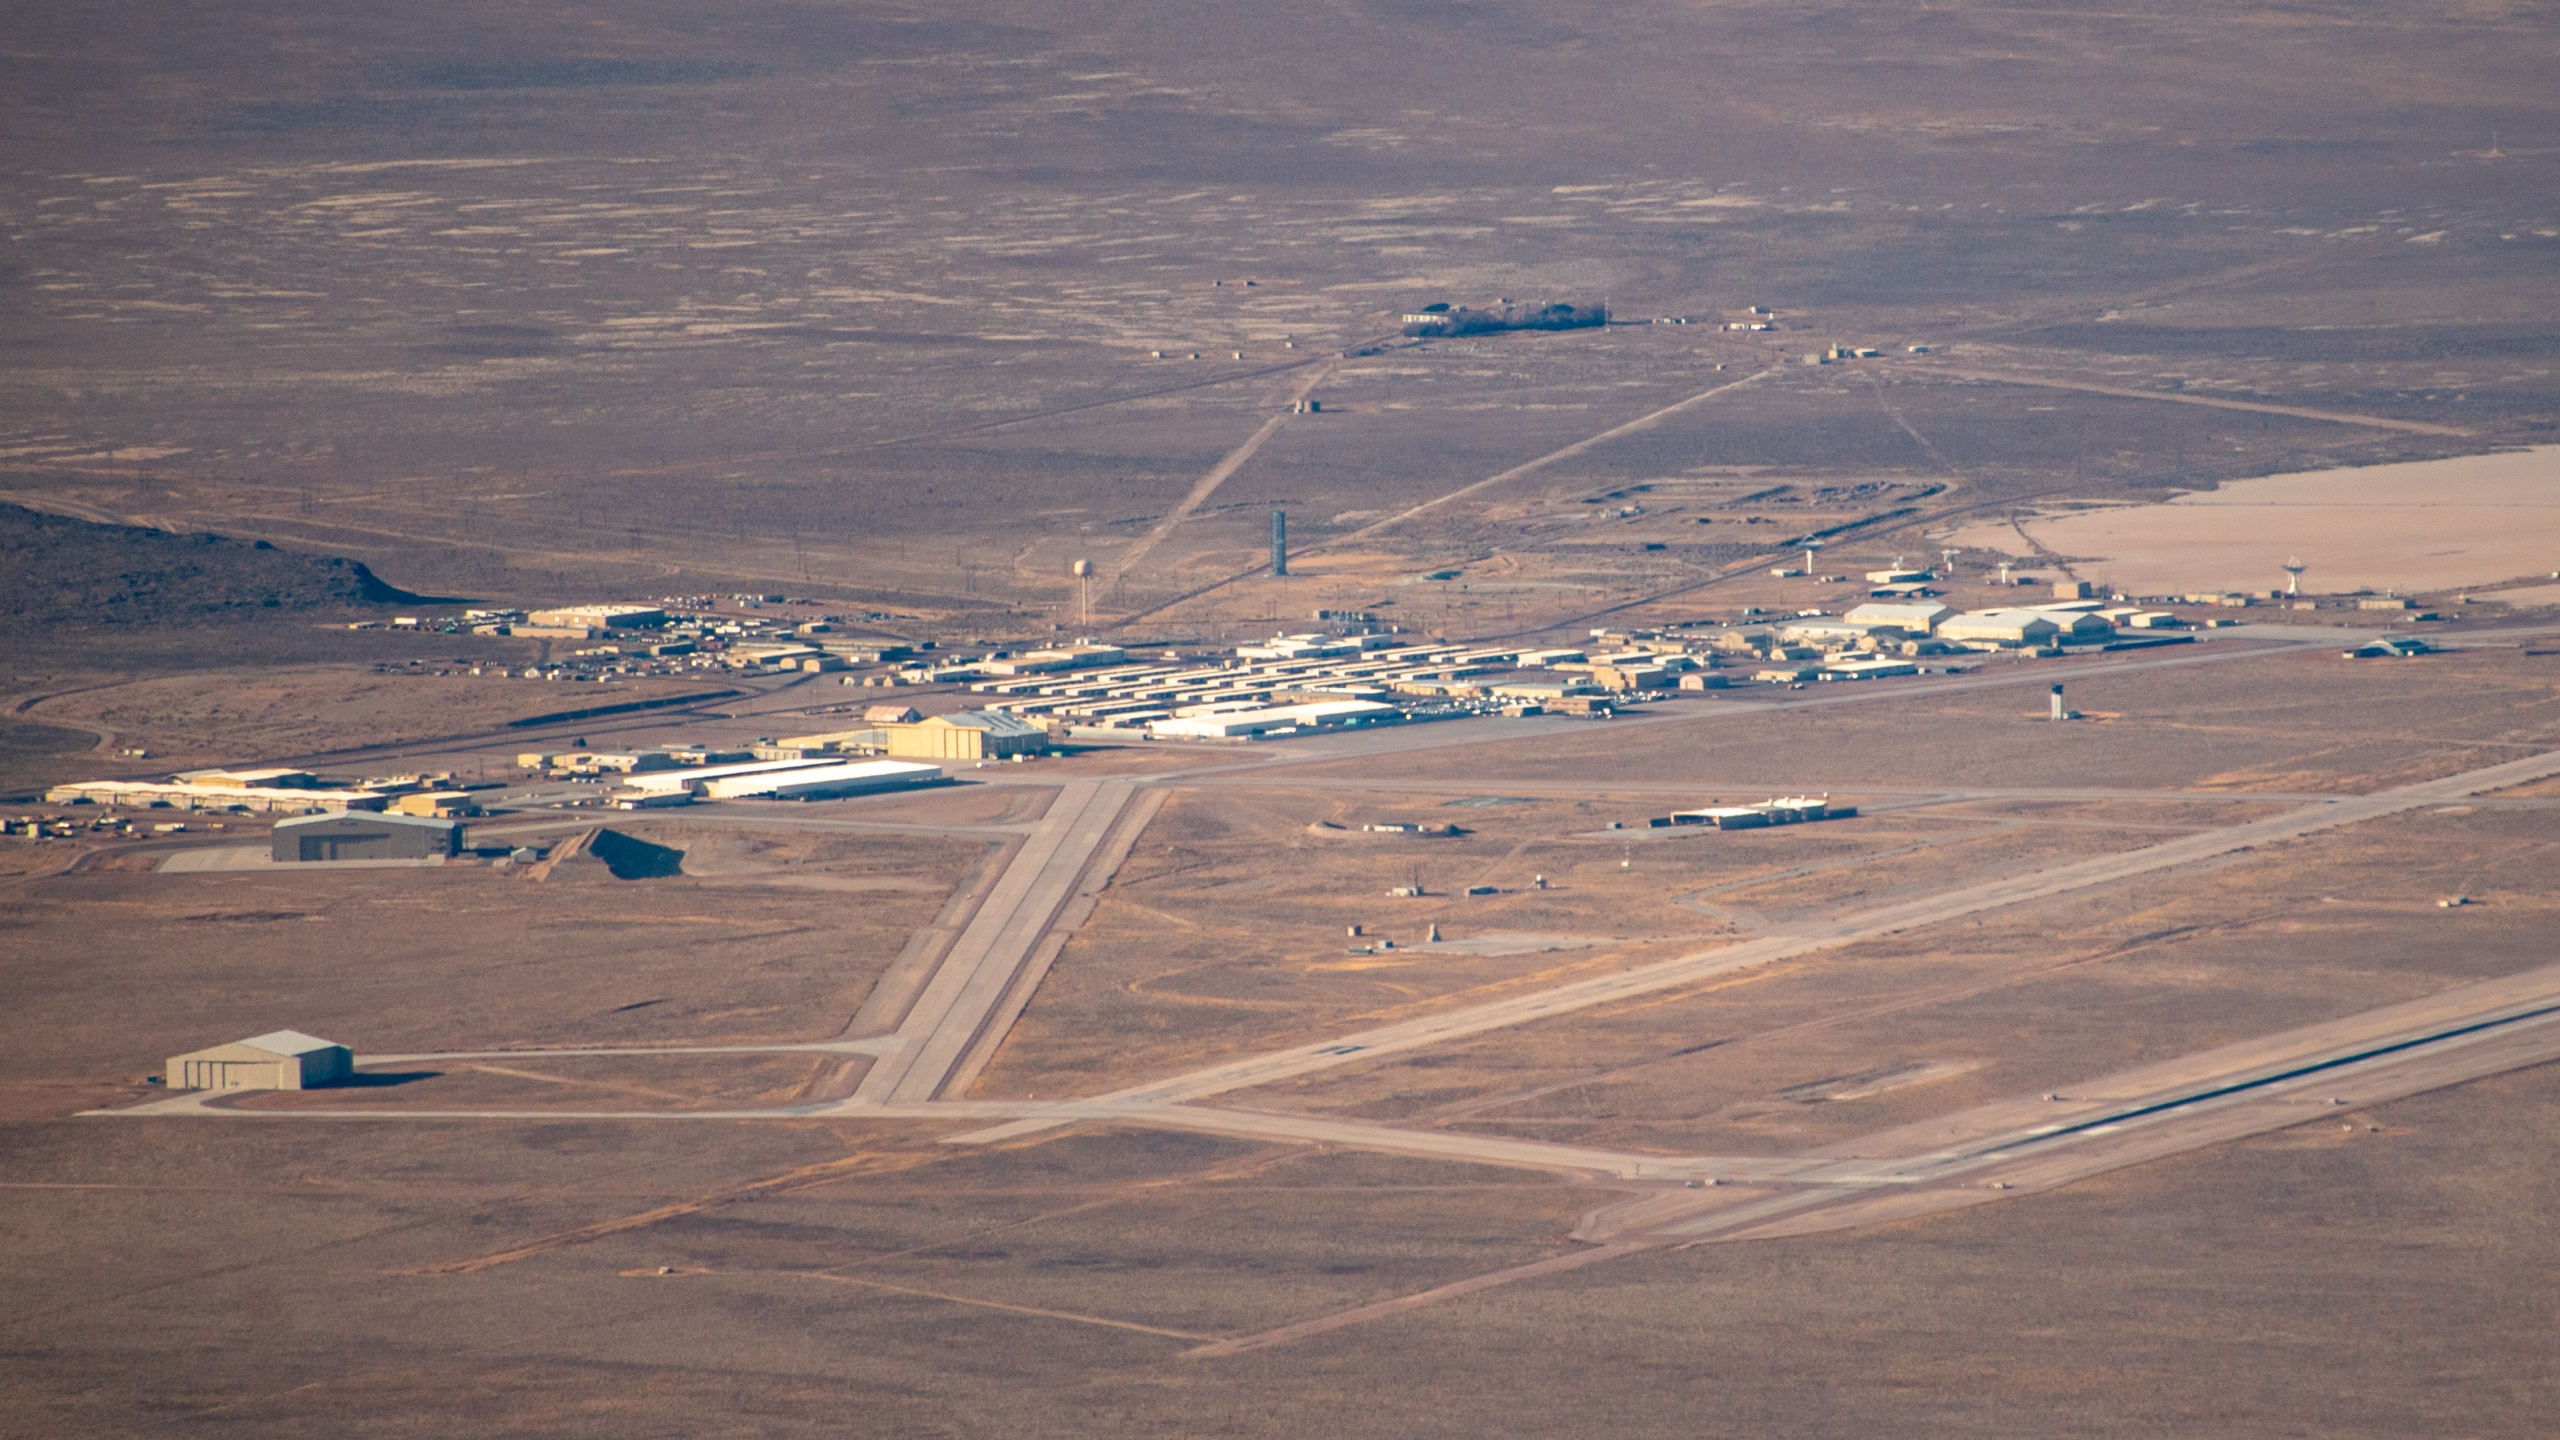 Area 51 at Groom Lake, NV (Photo: Gabe Zeifman)